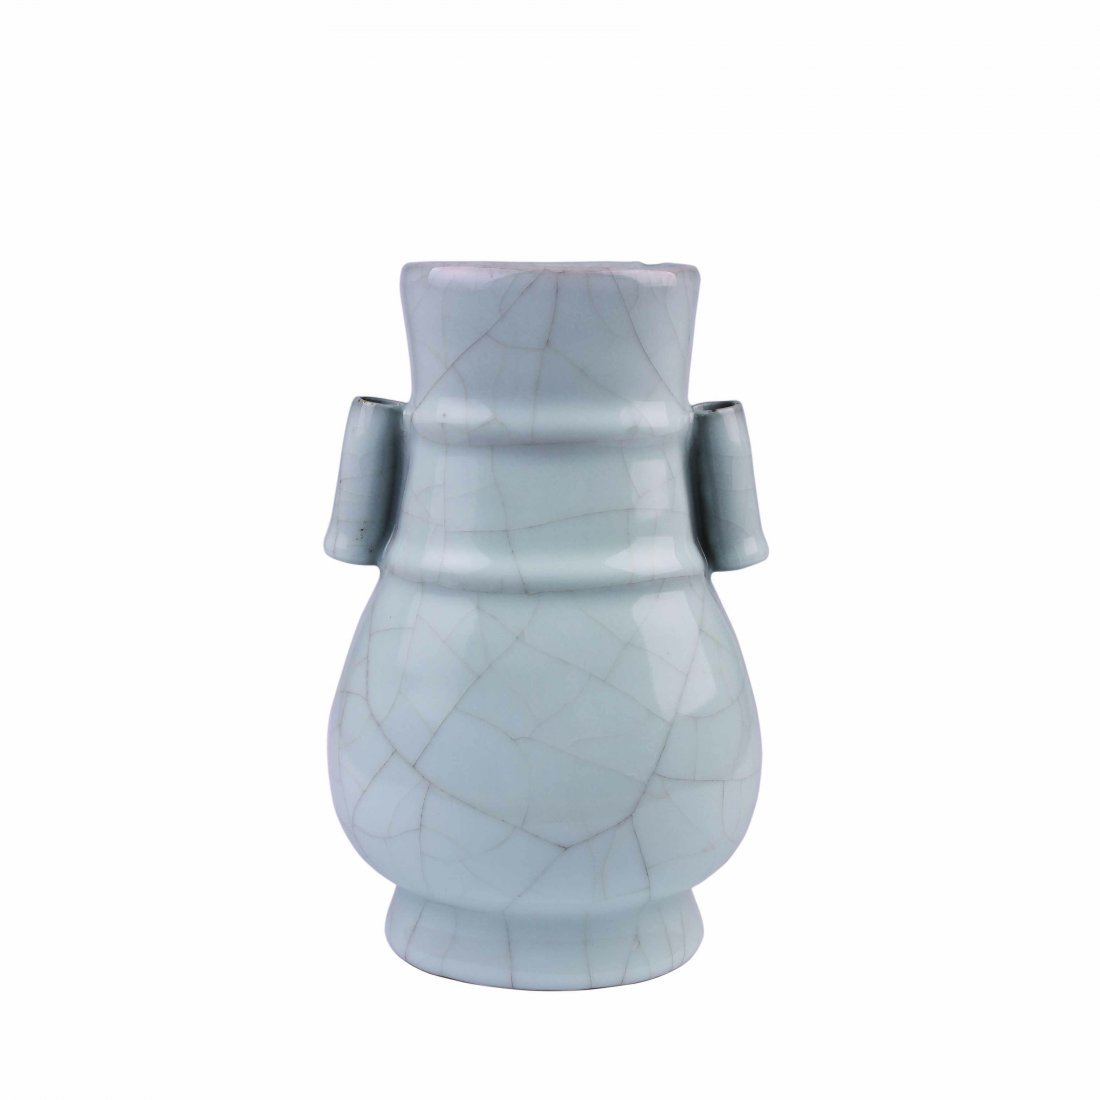 A 'Guan' Type Vase with a pair of Rectangular handles.